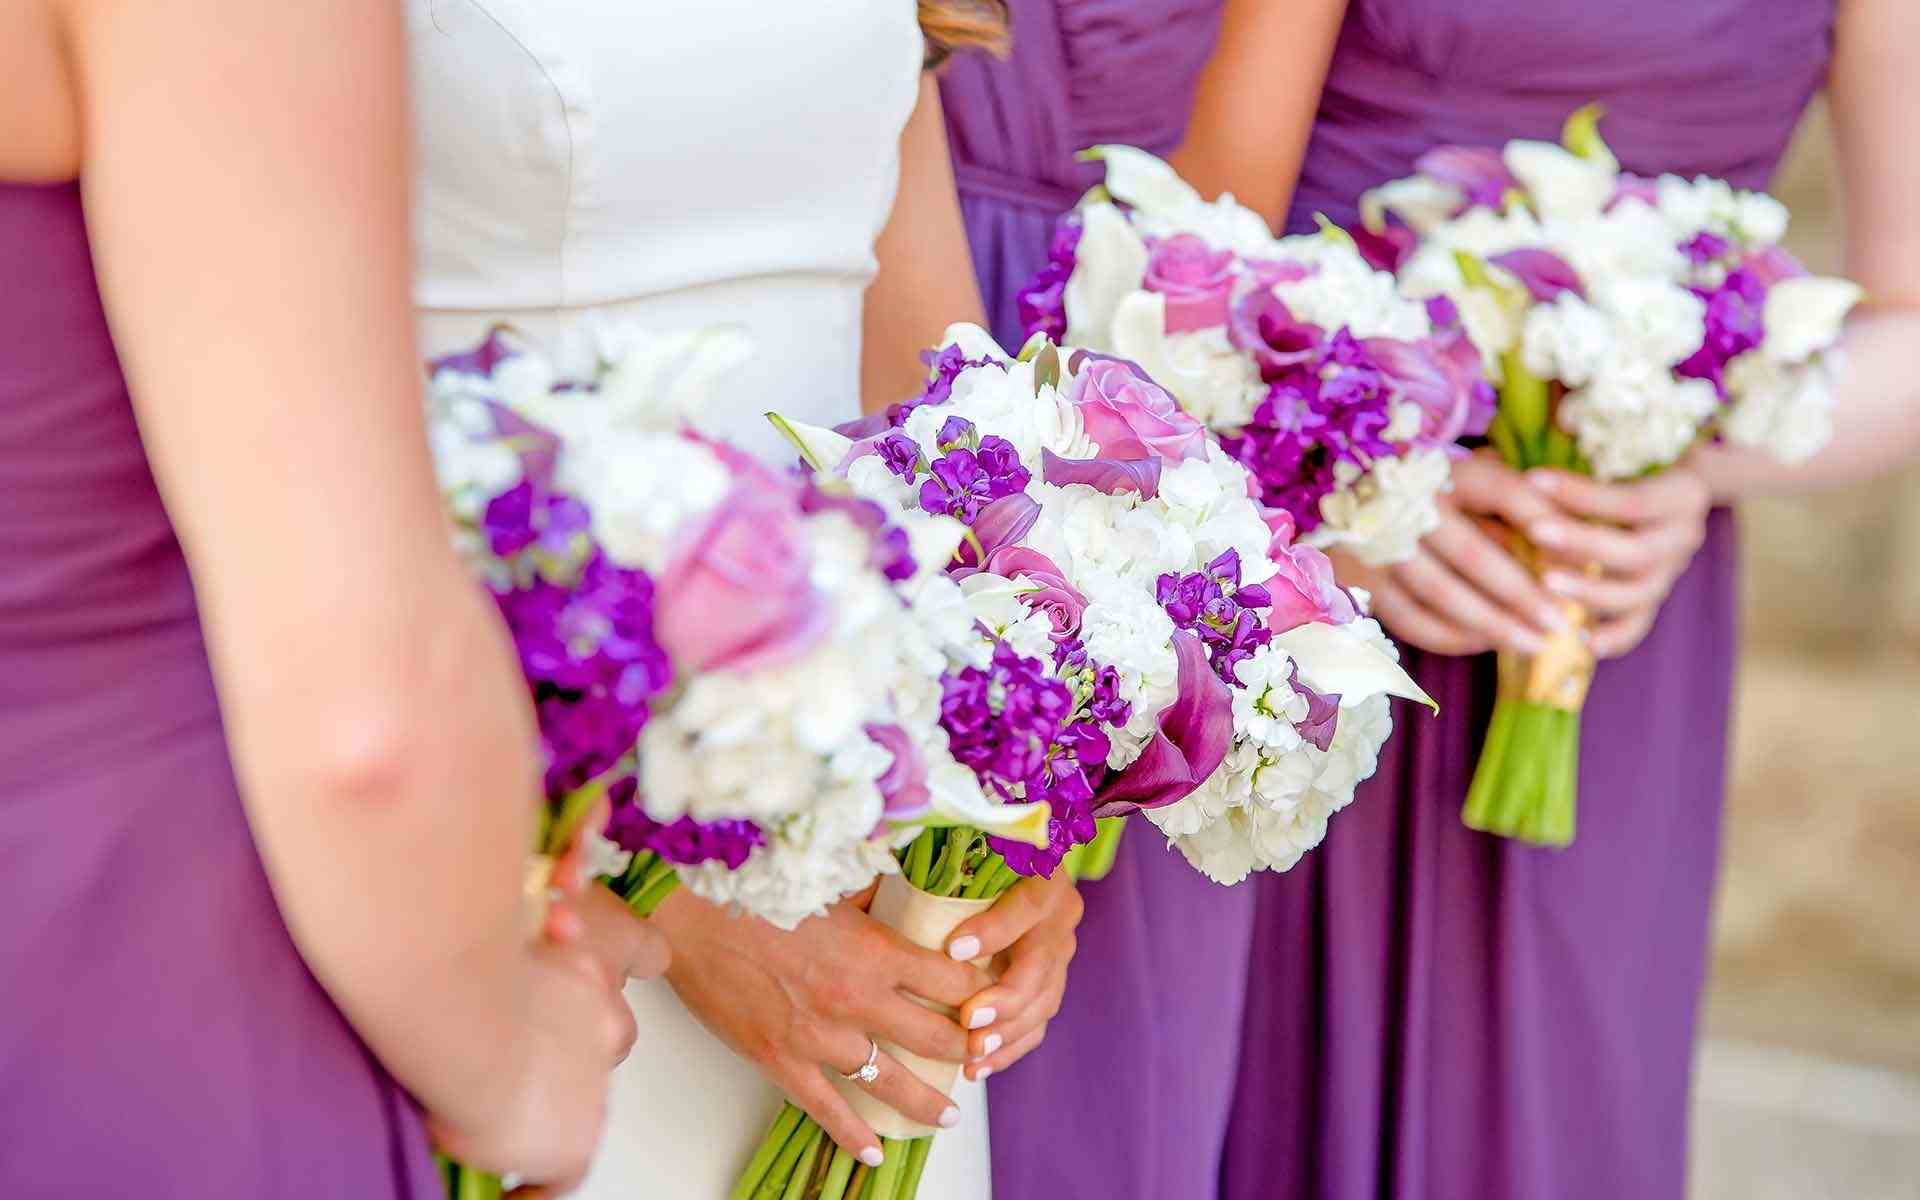 The-Bride-Among-The-Bridesmaids-With-Bouquets-Full-Of-Purple-And-White-Blooms-Popped